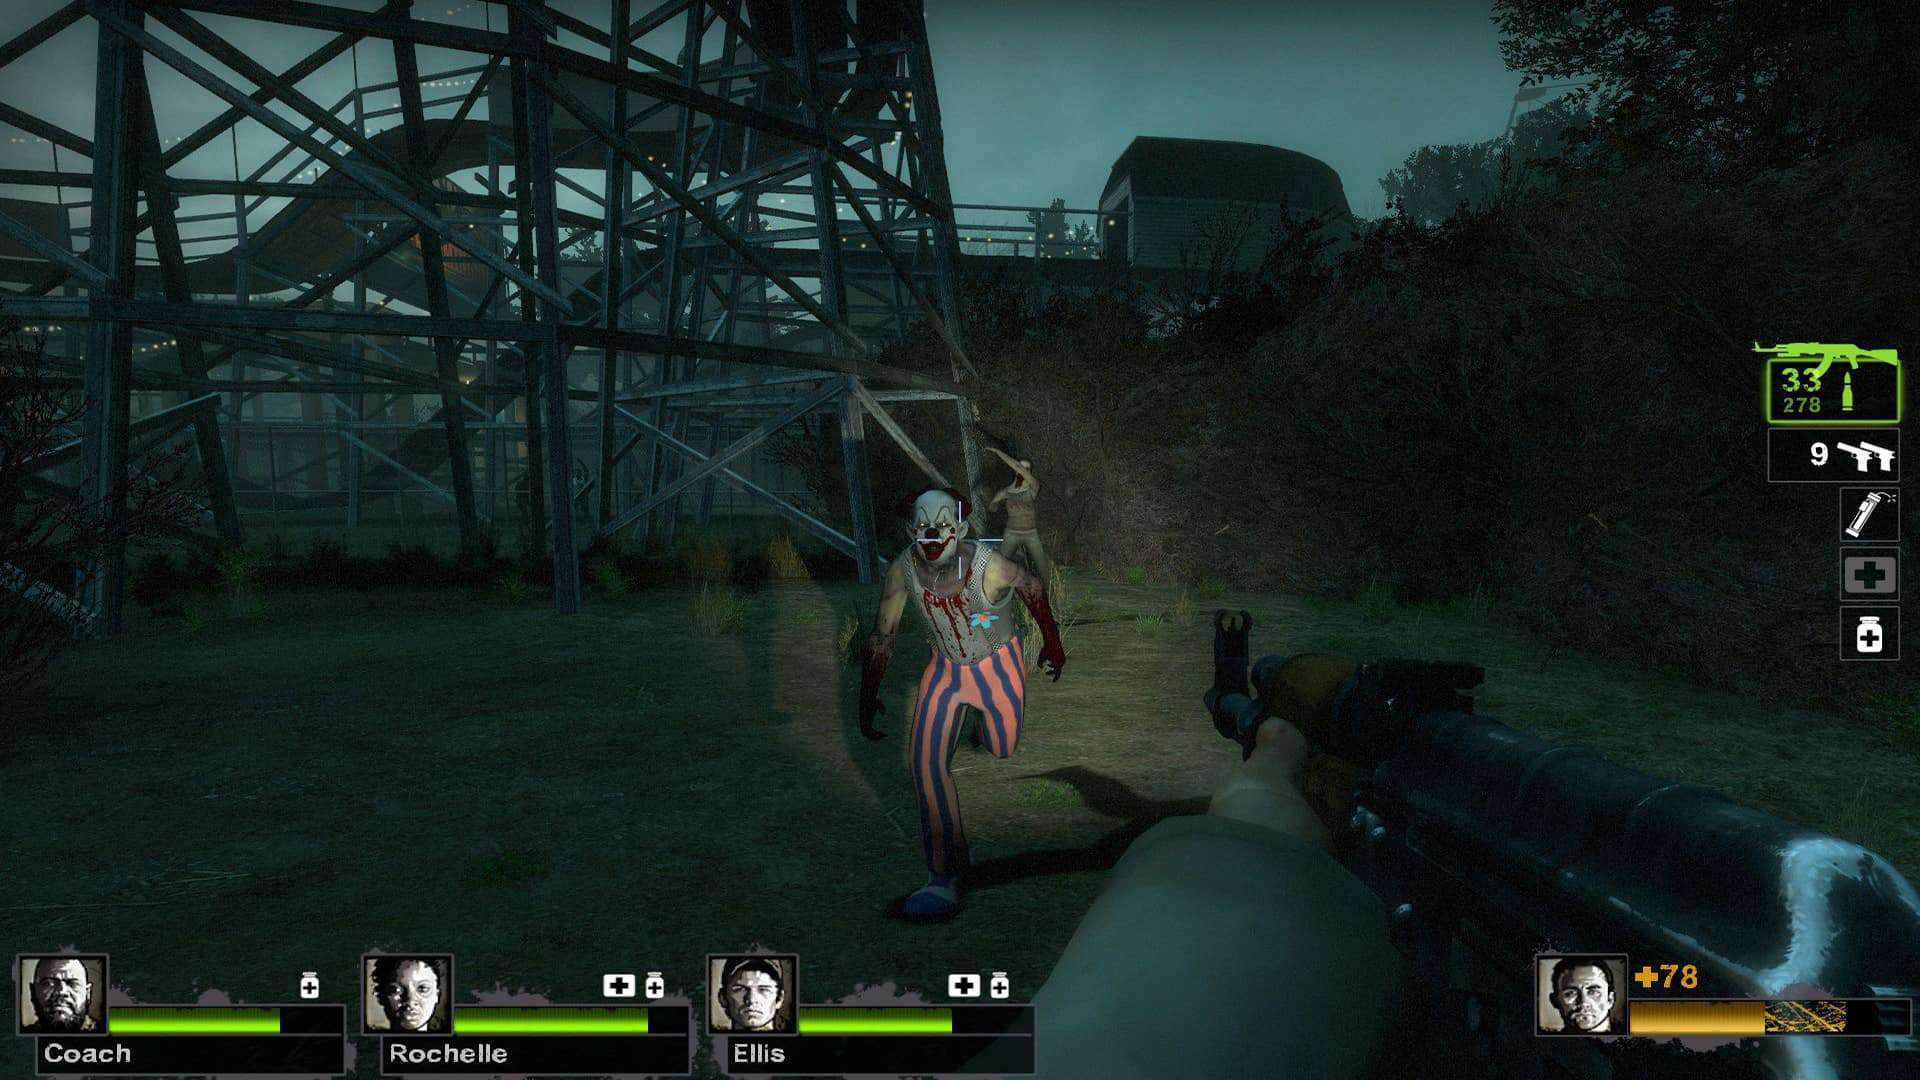 Left 4 Dead 2 Free Game Download - Install-Game